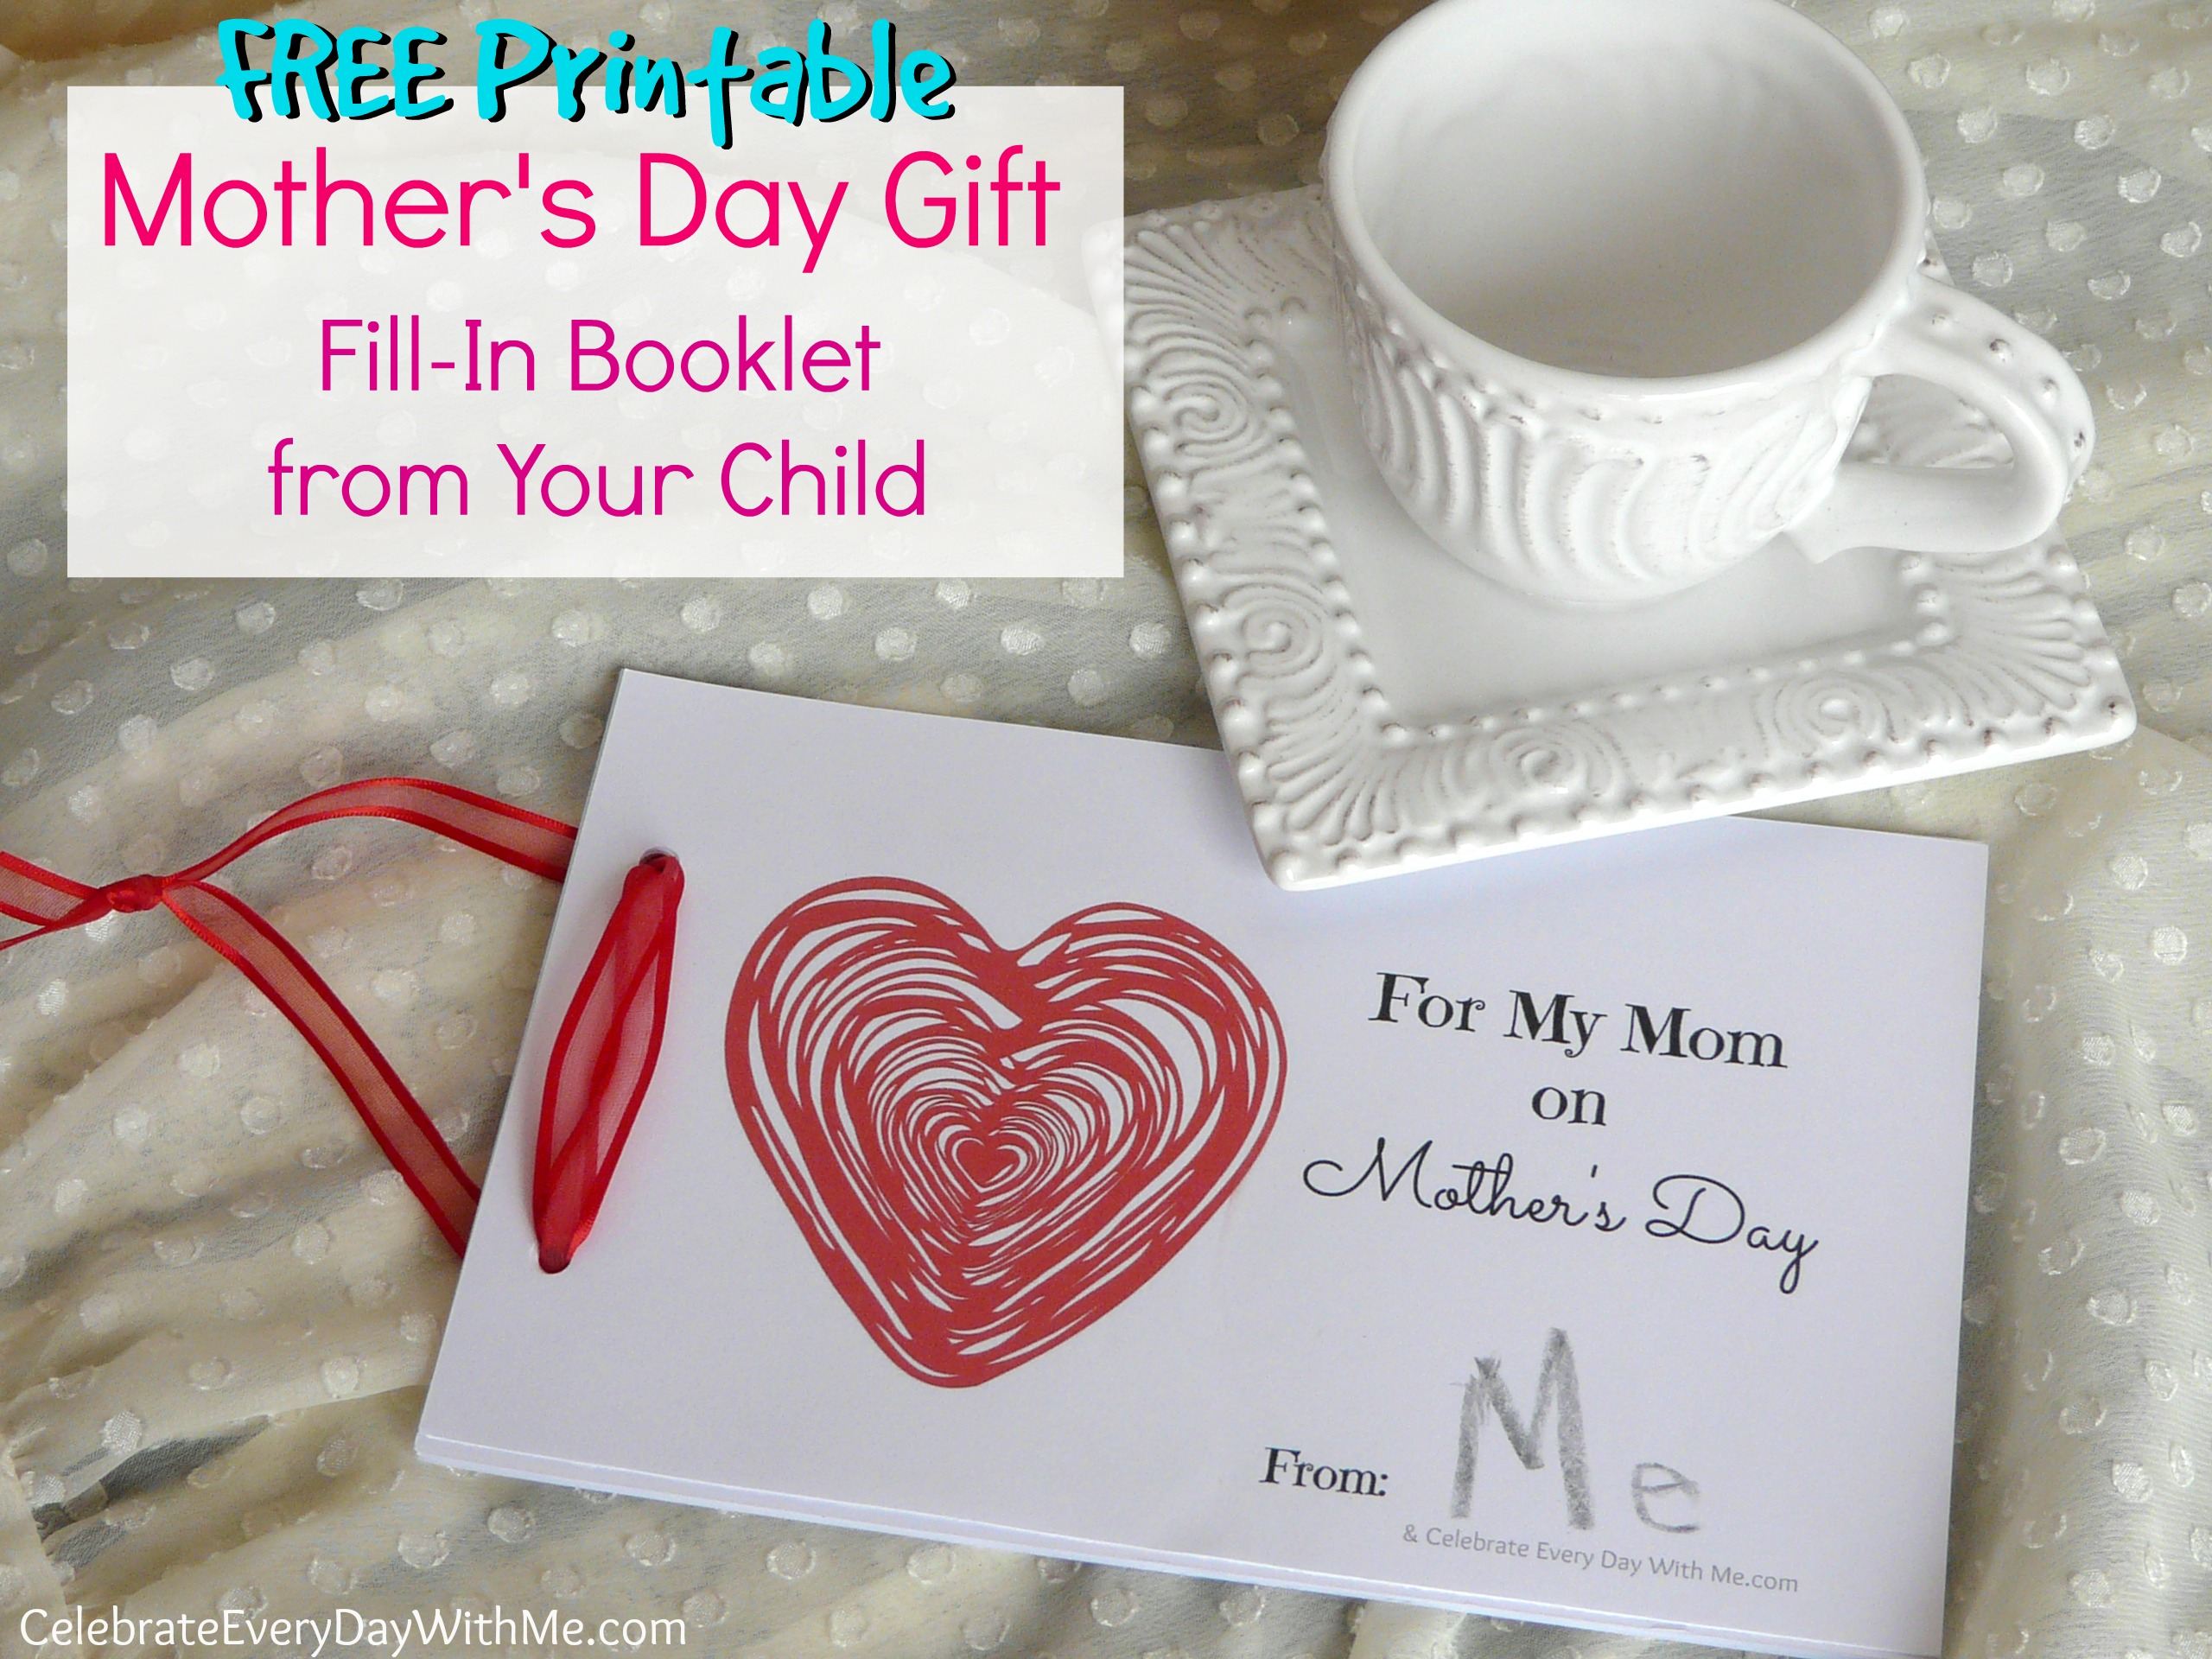 Diy Mothers Day Gifts From Baby Mother 39s Day Gift A Free Fill In Booklet From Your Child